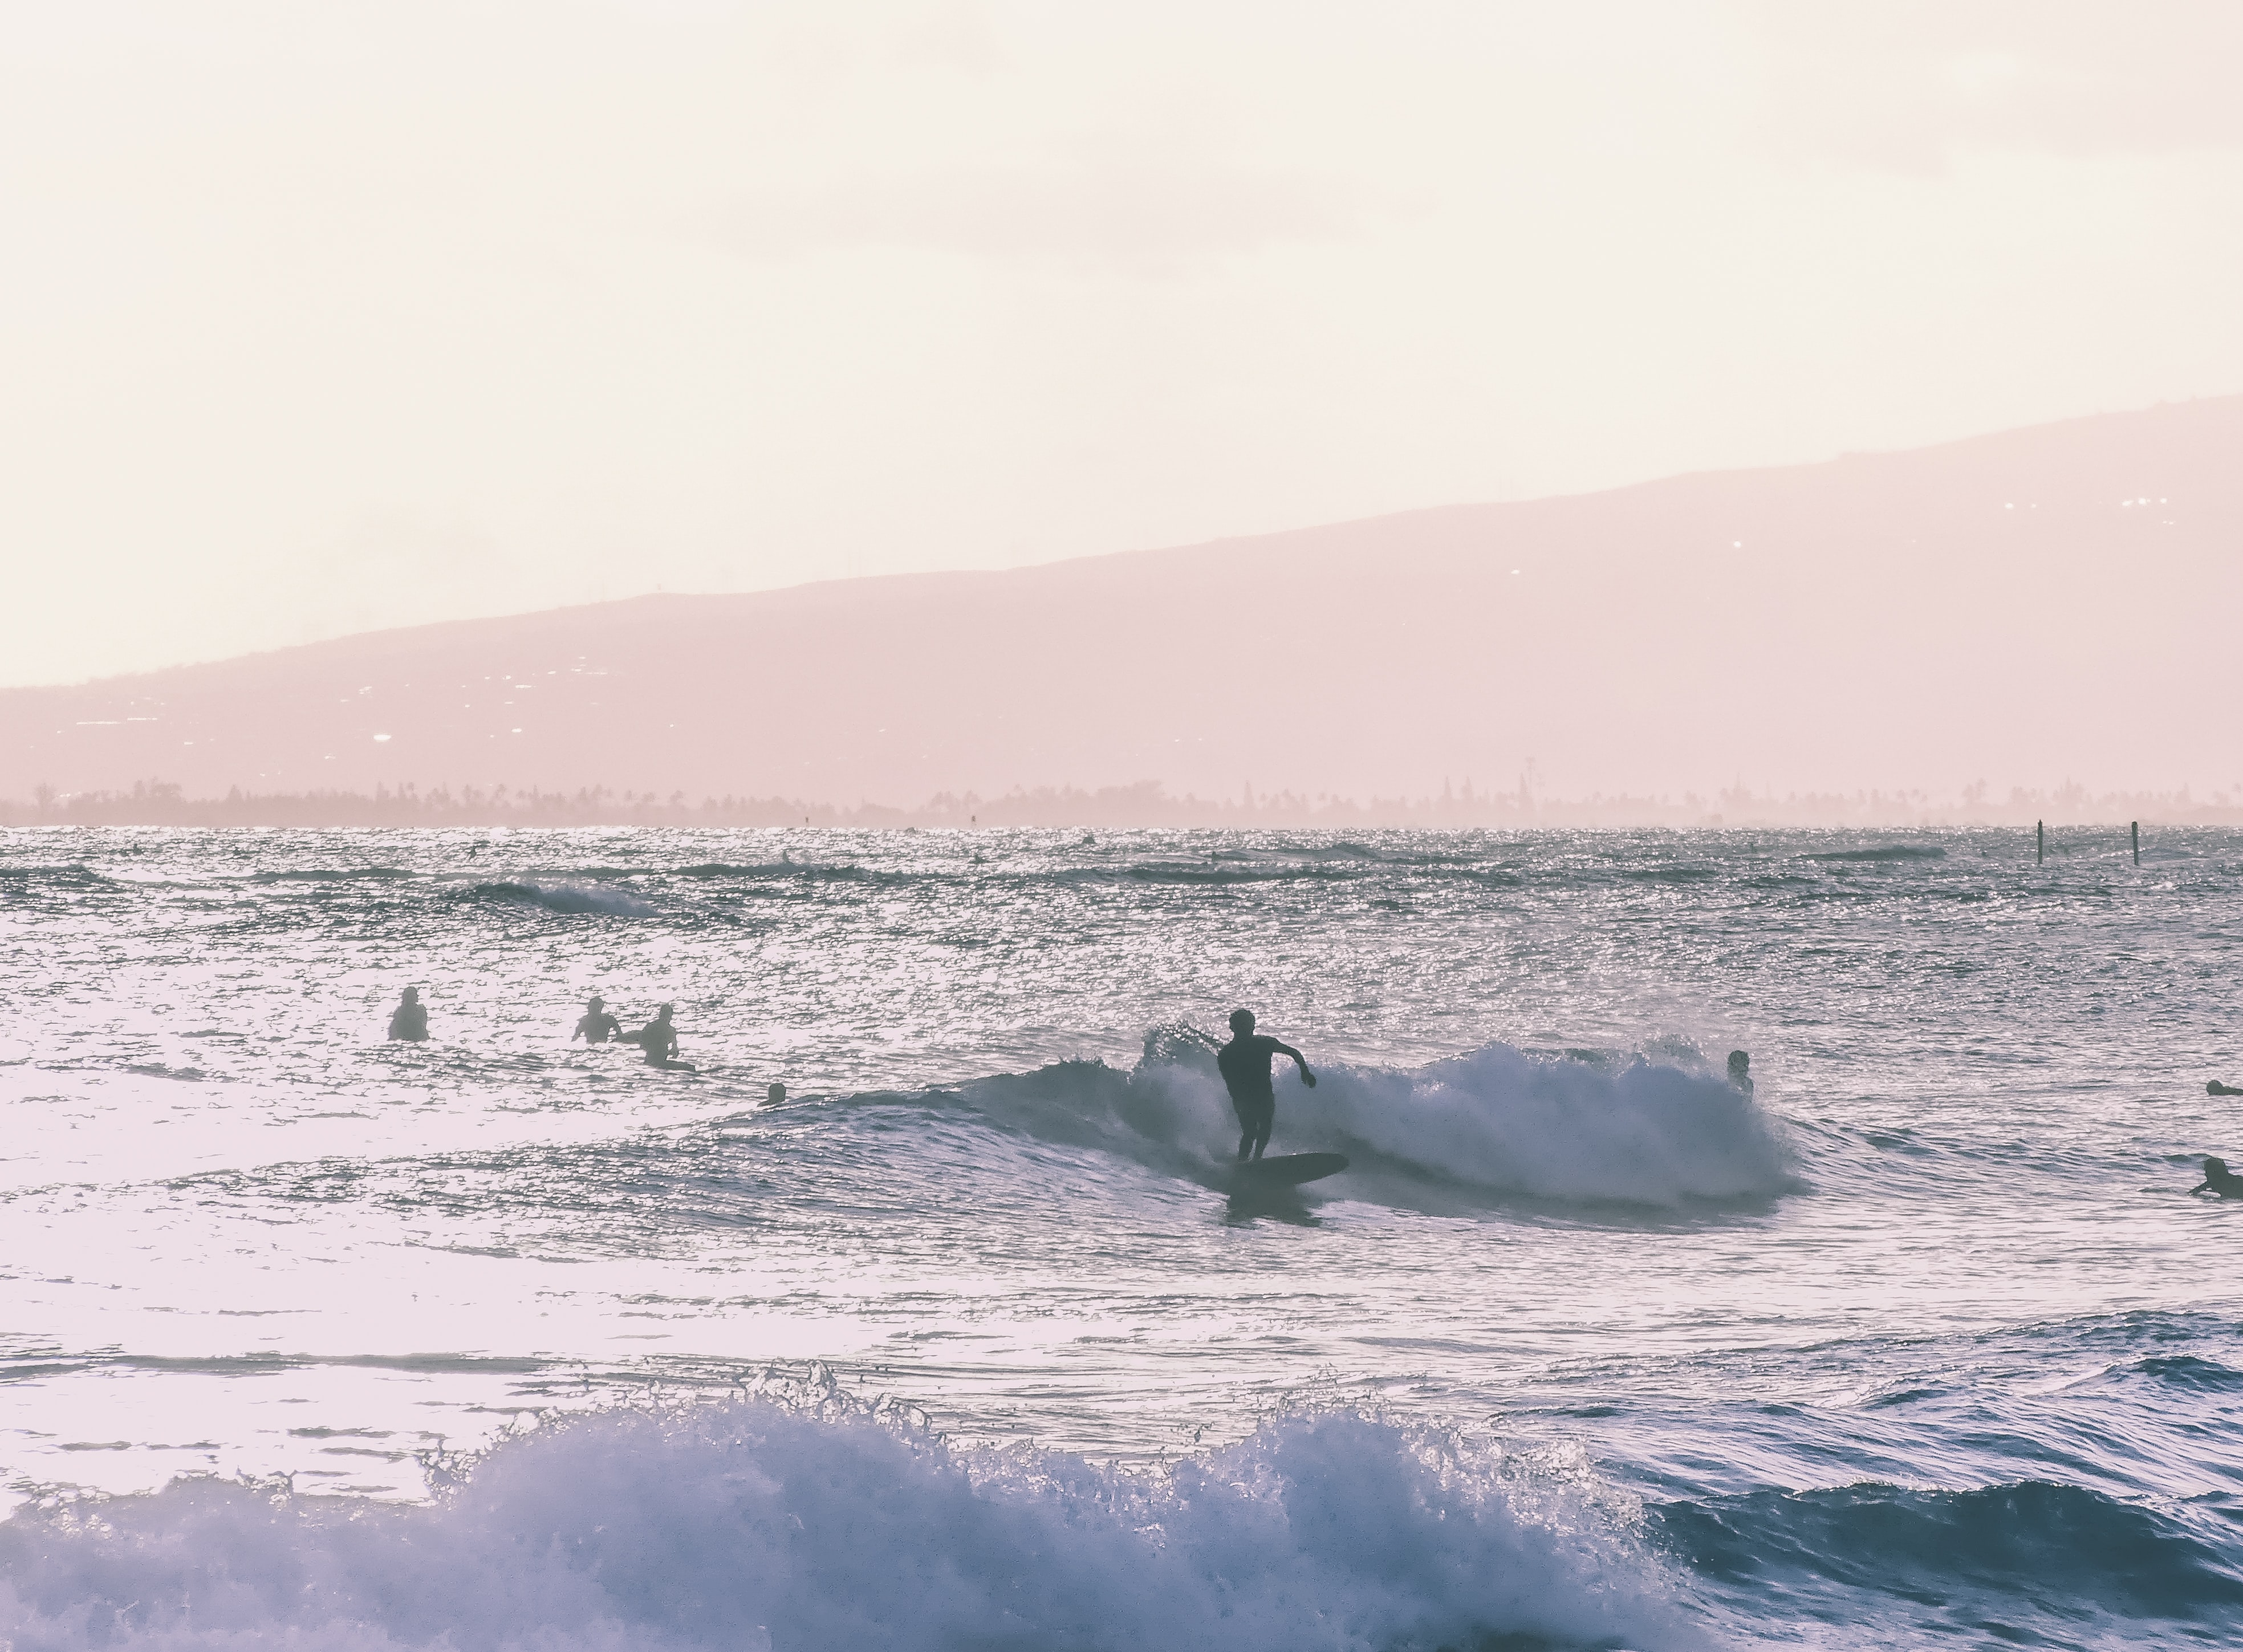 Surfers surfing in the ocean during the day at the Waikīkī Beach